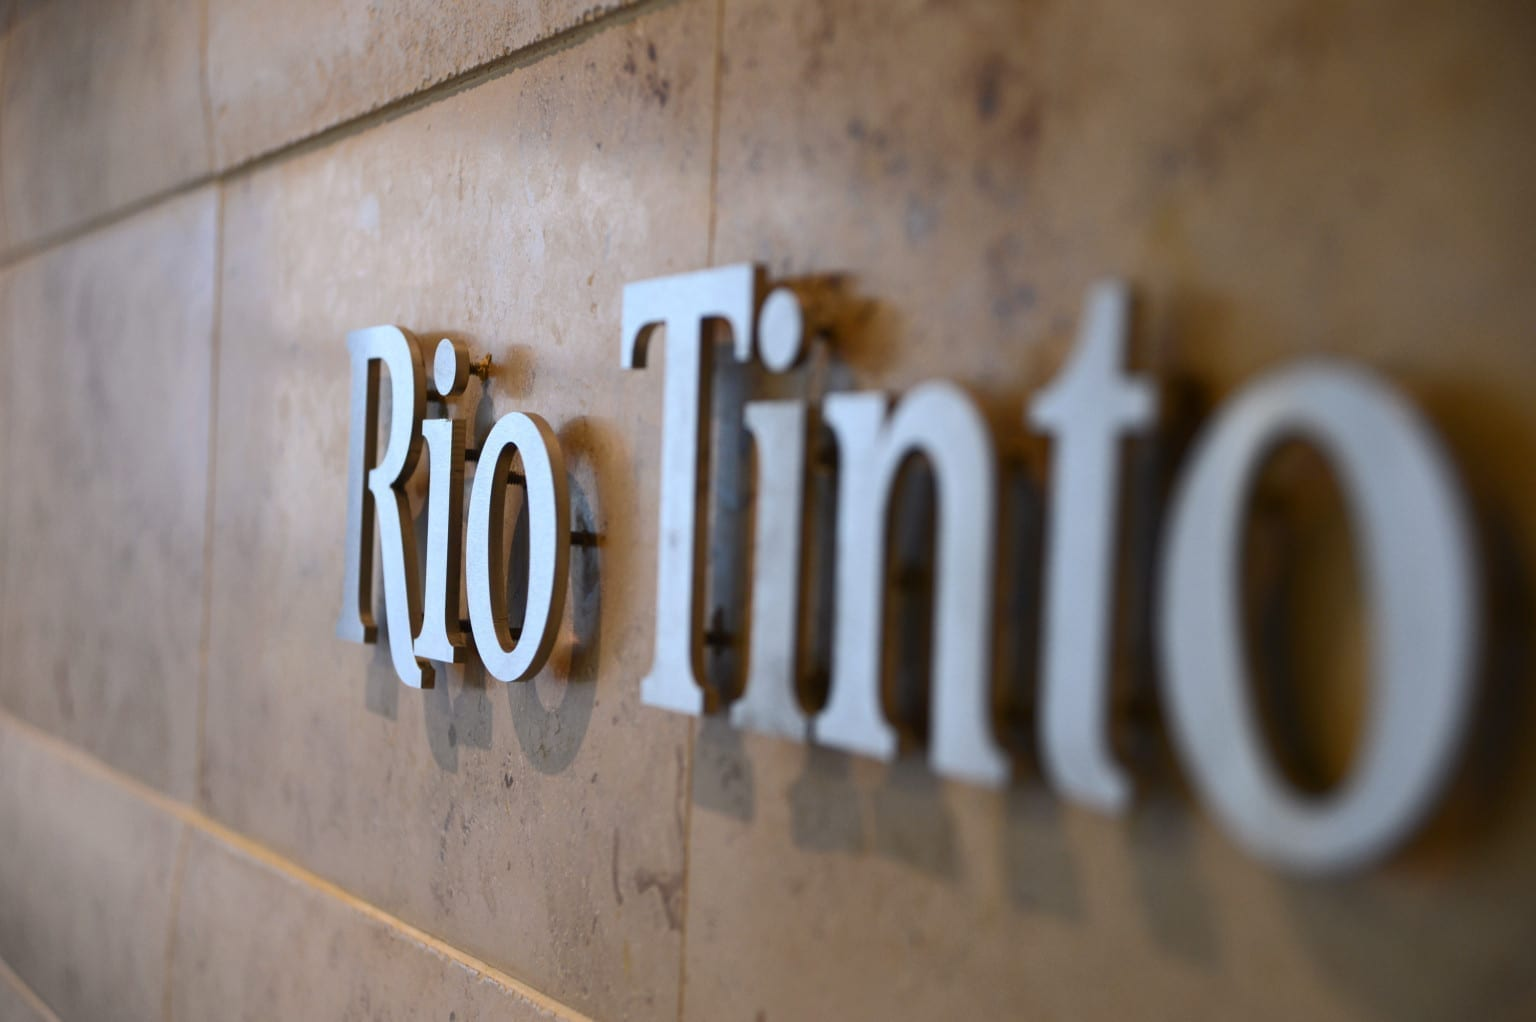 Rio Tinto successfully completes $1.5 billion on-market share buy-back